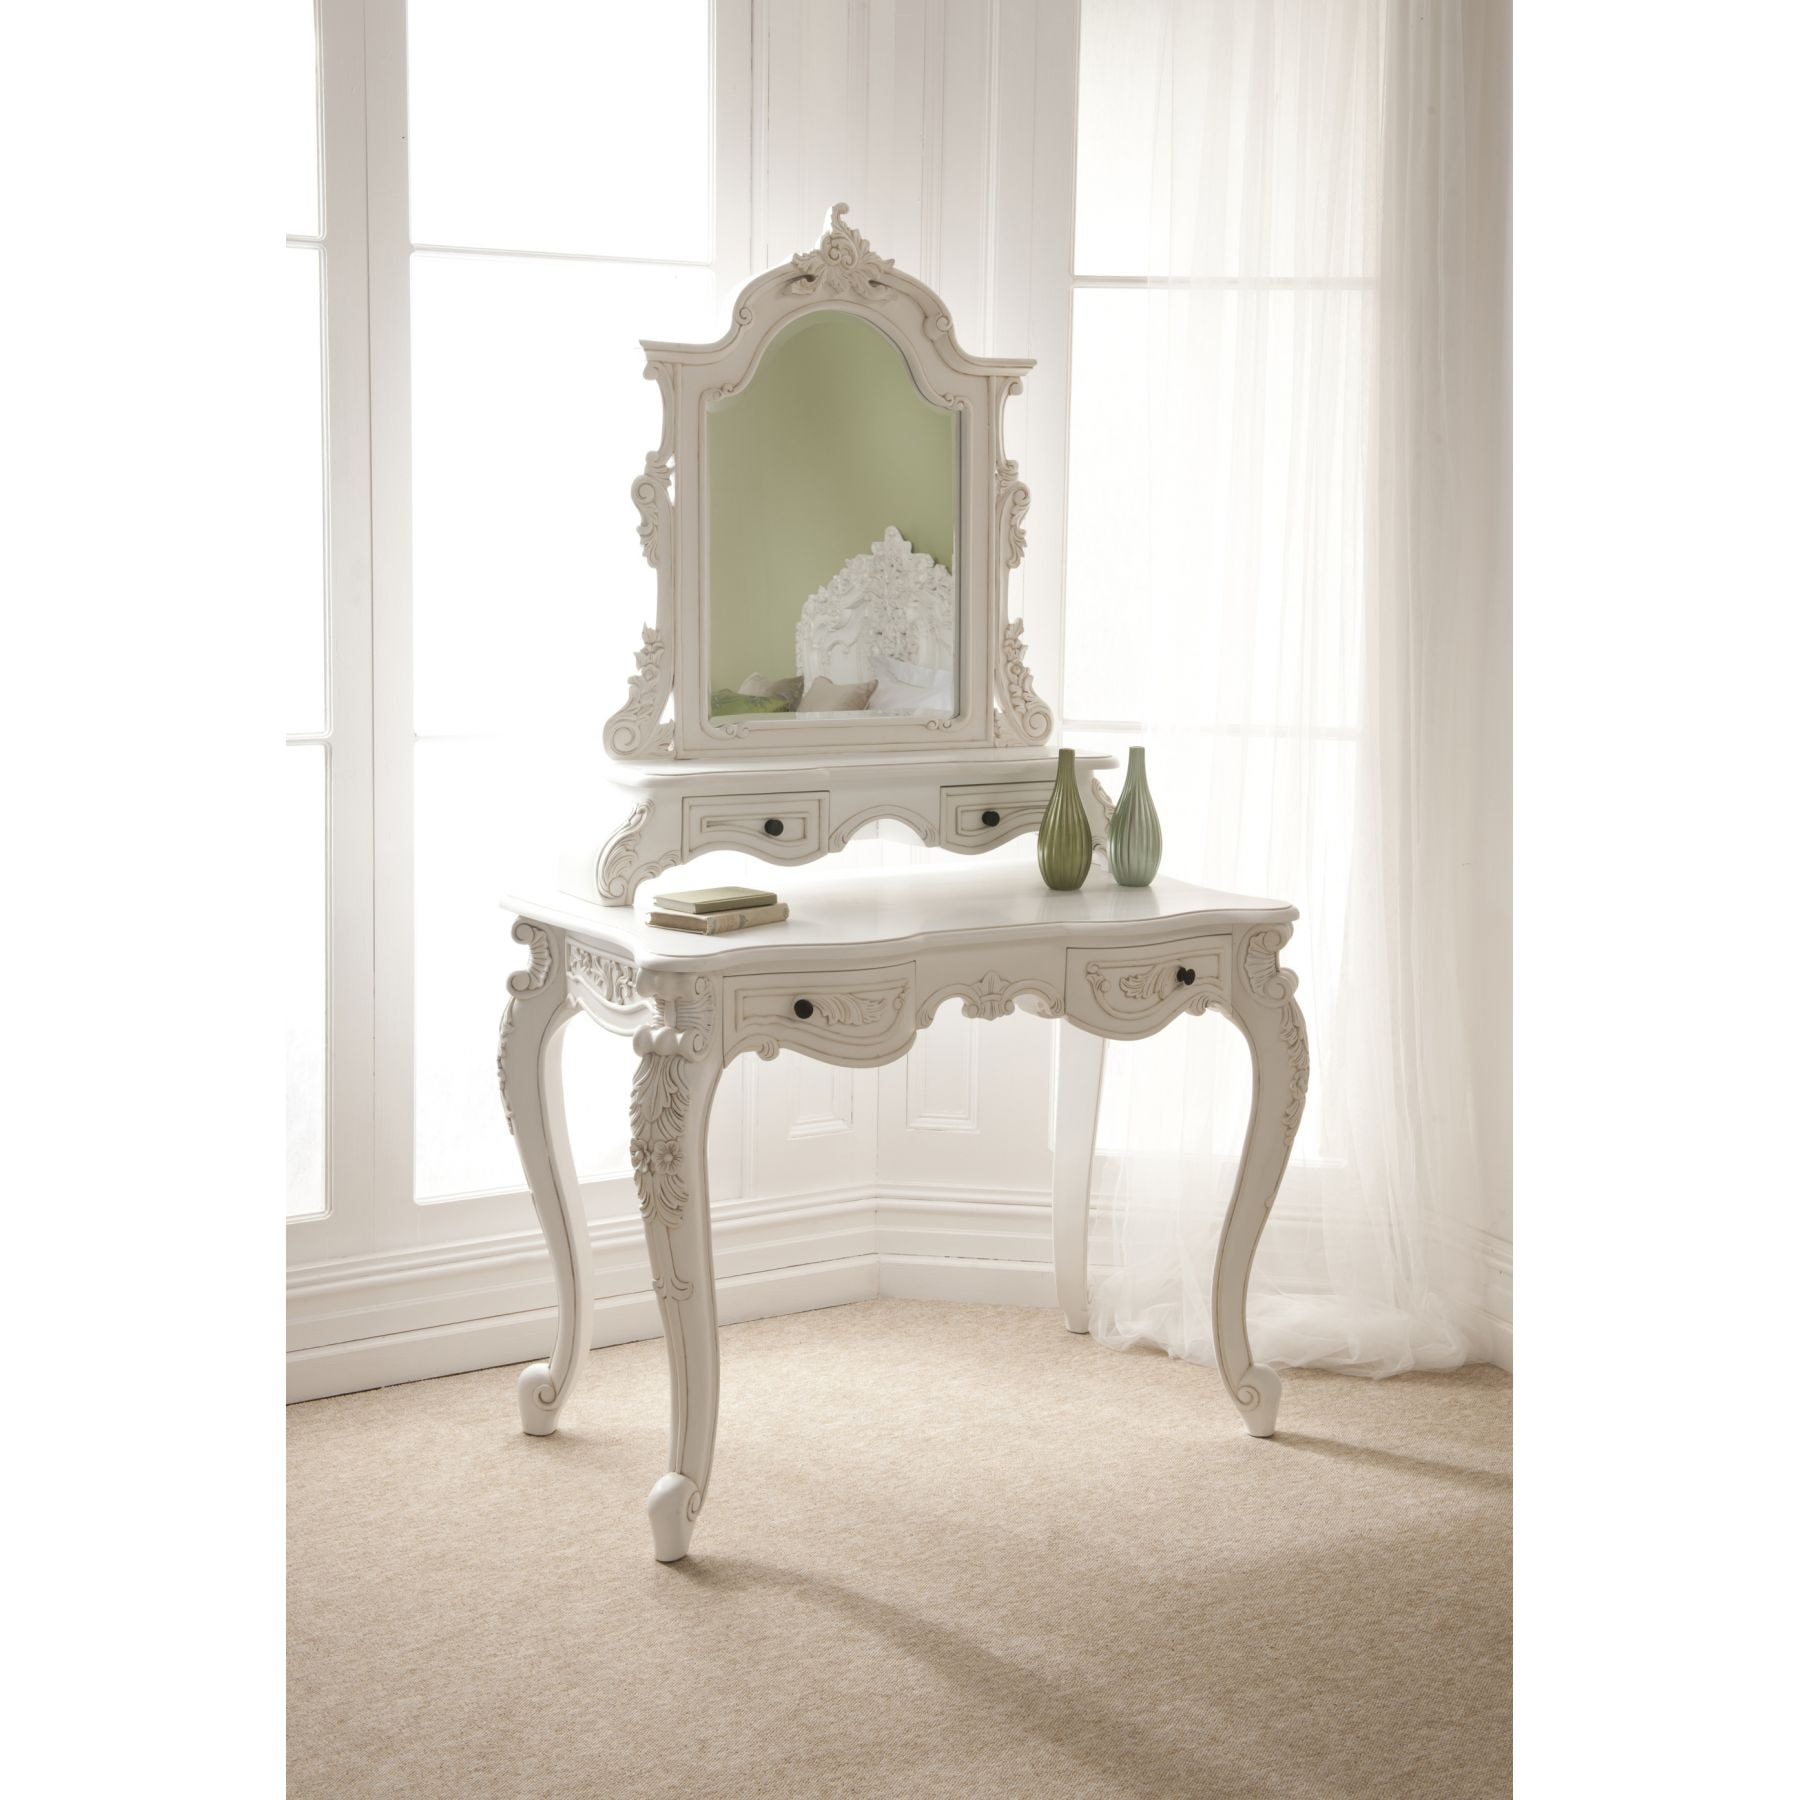 Rococo Antique French Dressing Table Set French Furniture From